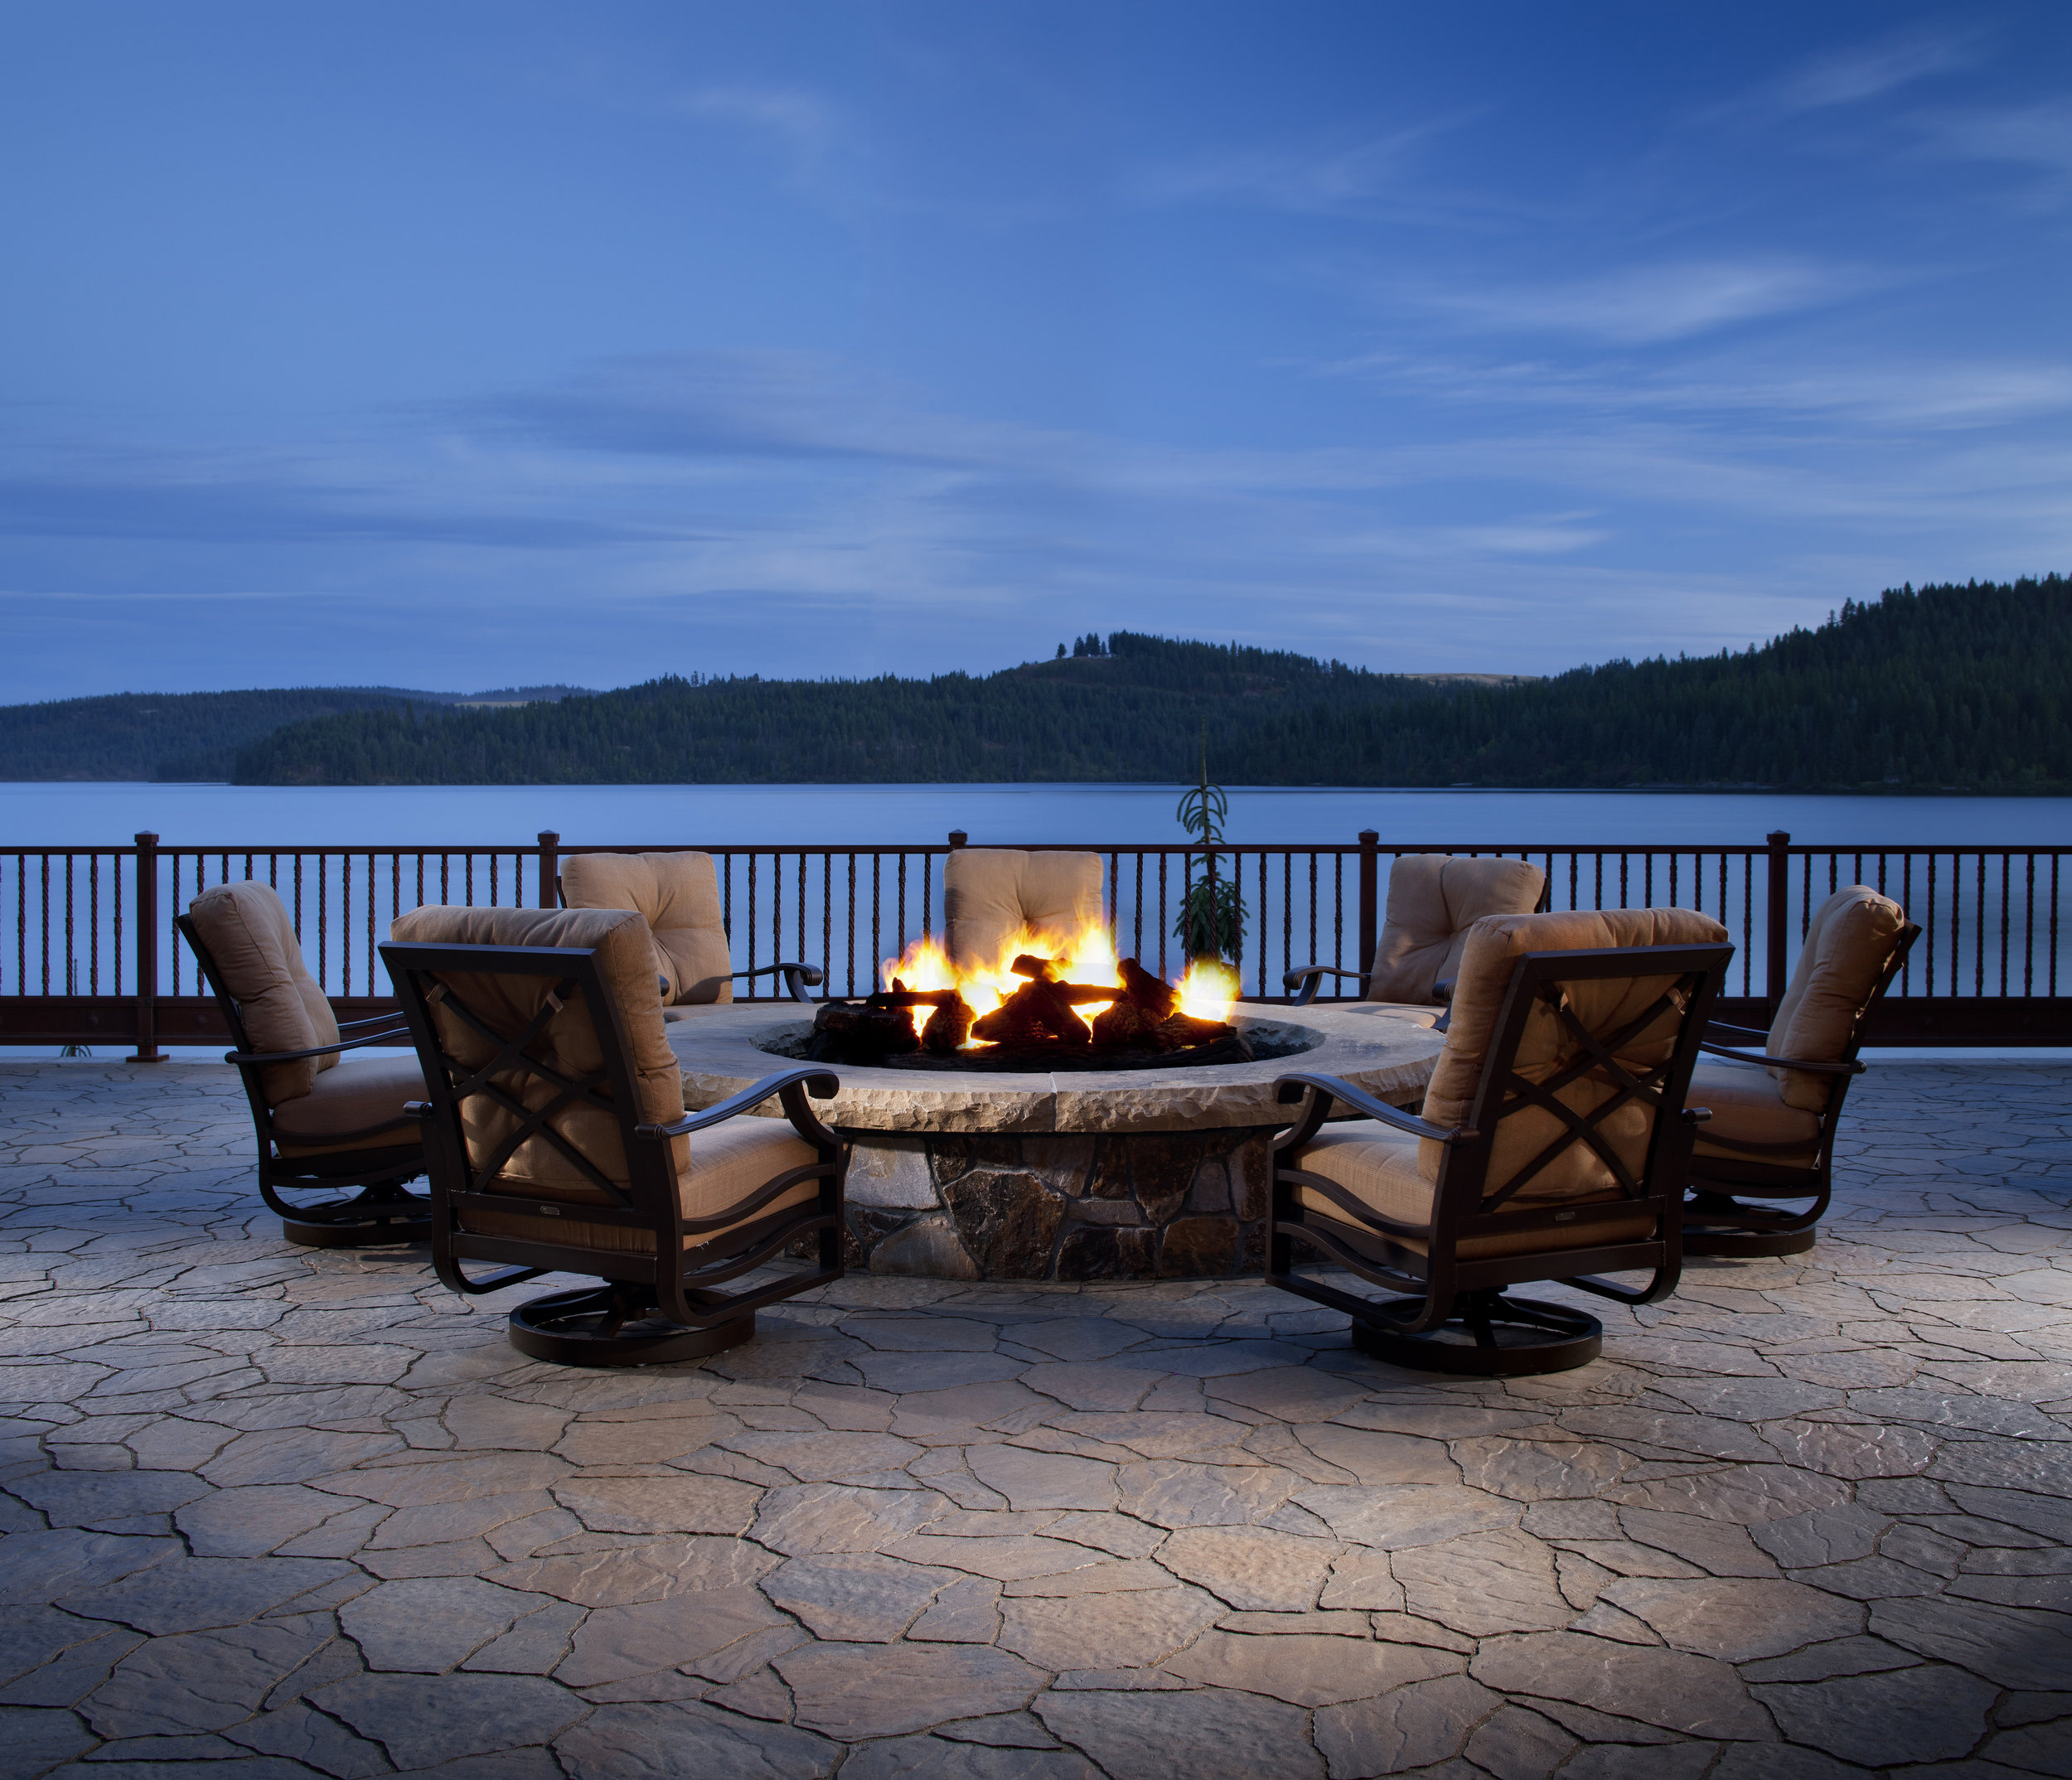 fire pit patio waterfront lake cozy sitting area relax